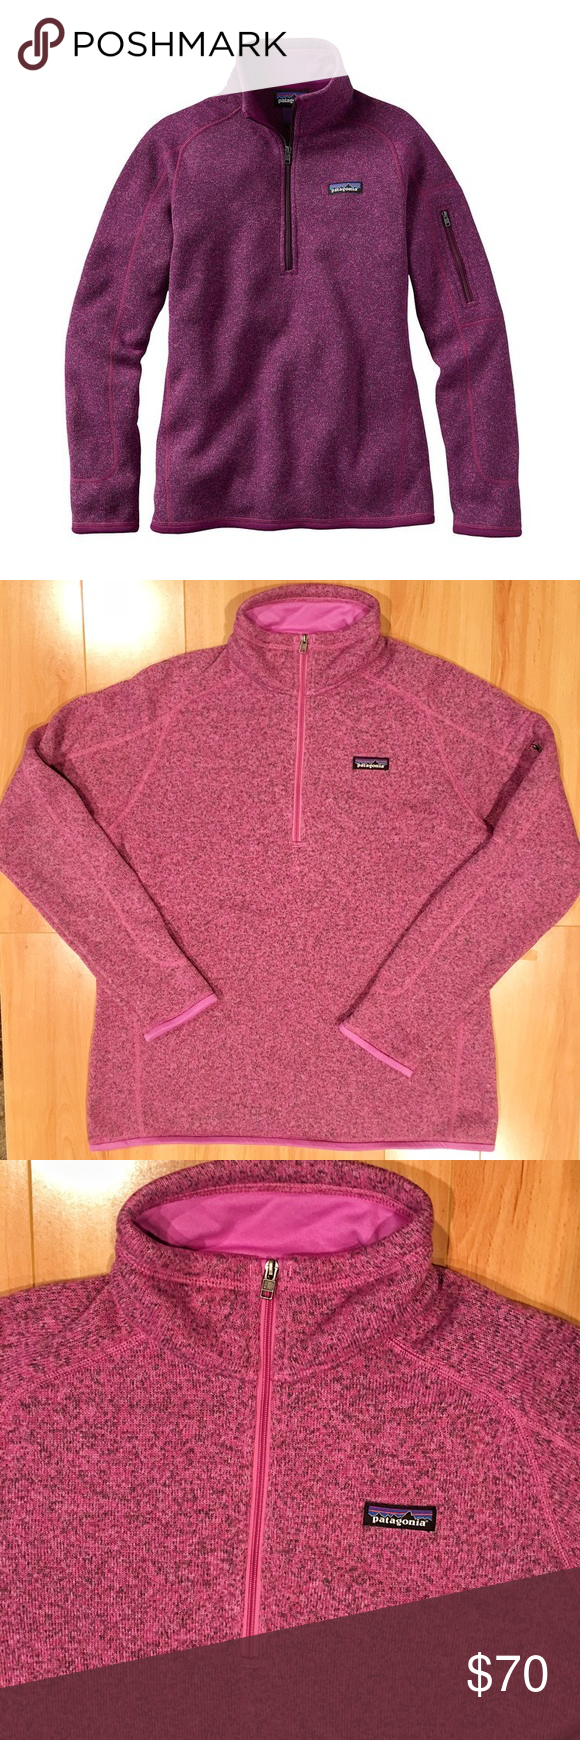 Patagonia Better Sweater Half Zip Fleece | Patagonia, Pullover and ...